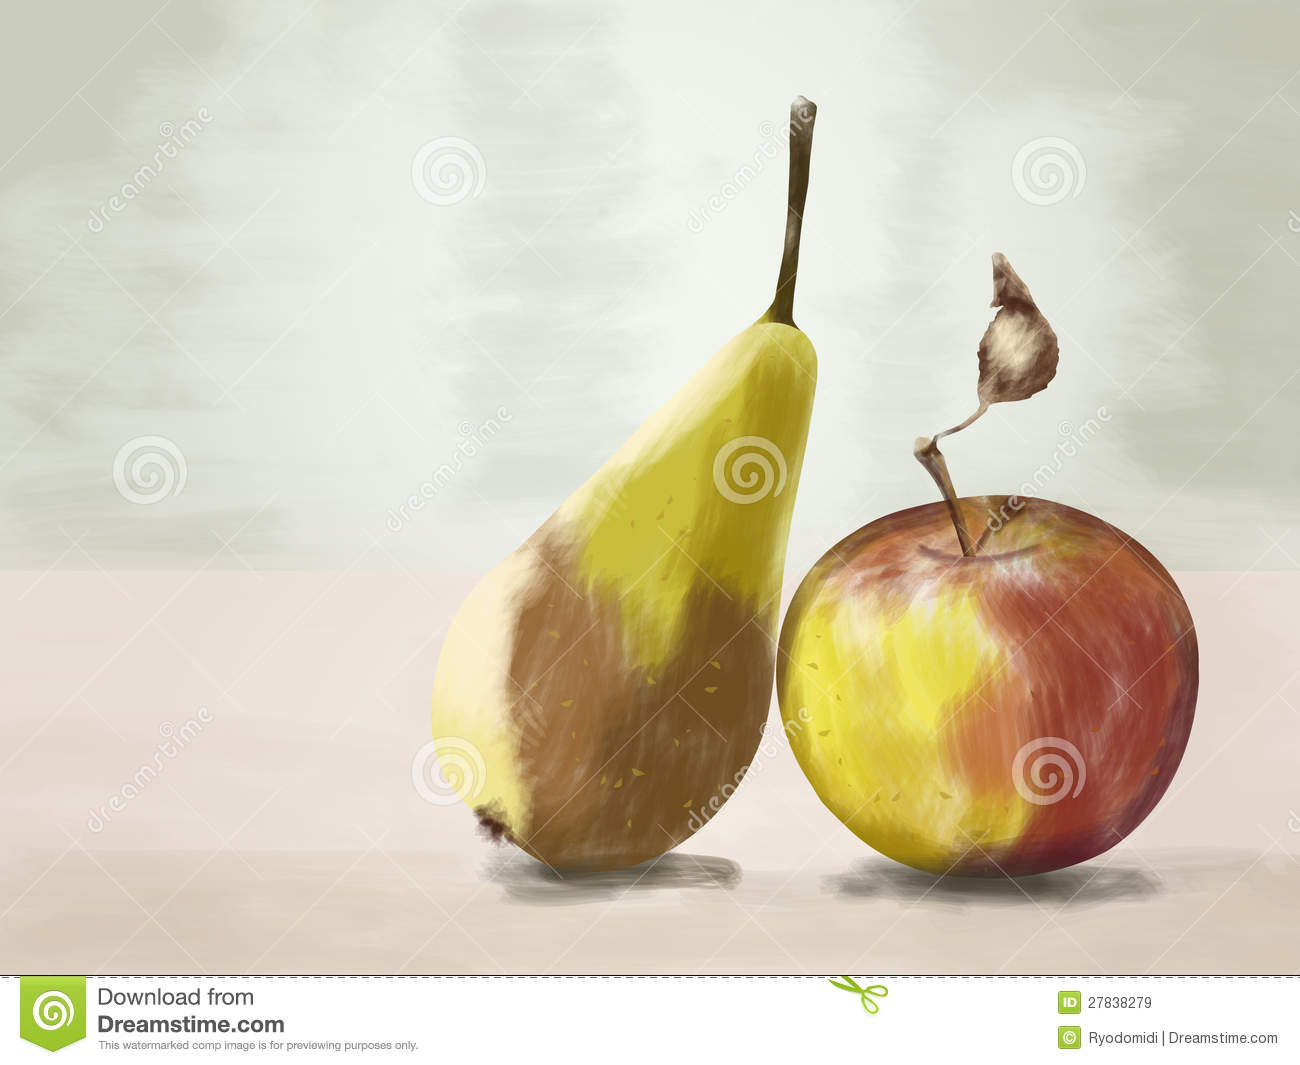 Pear And Apple Drawing Stock Illustration. Illustration Of